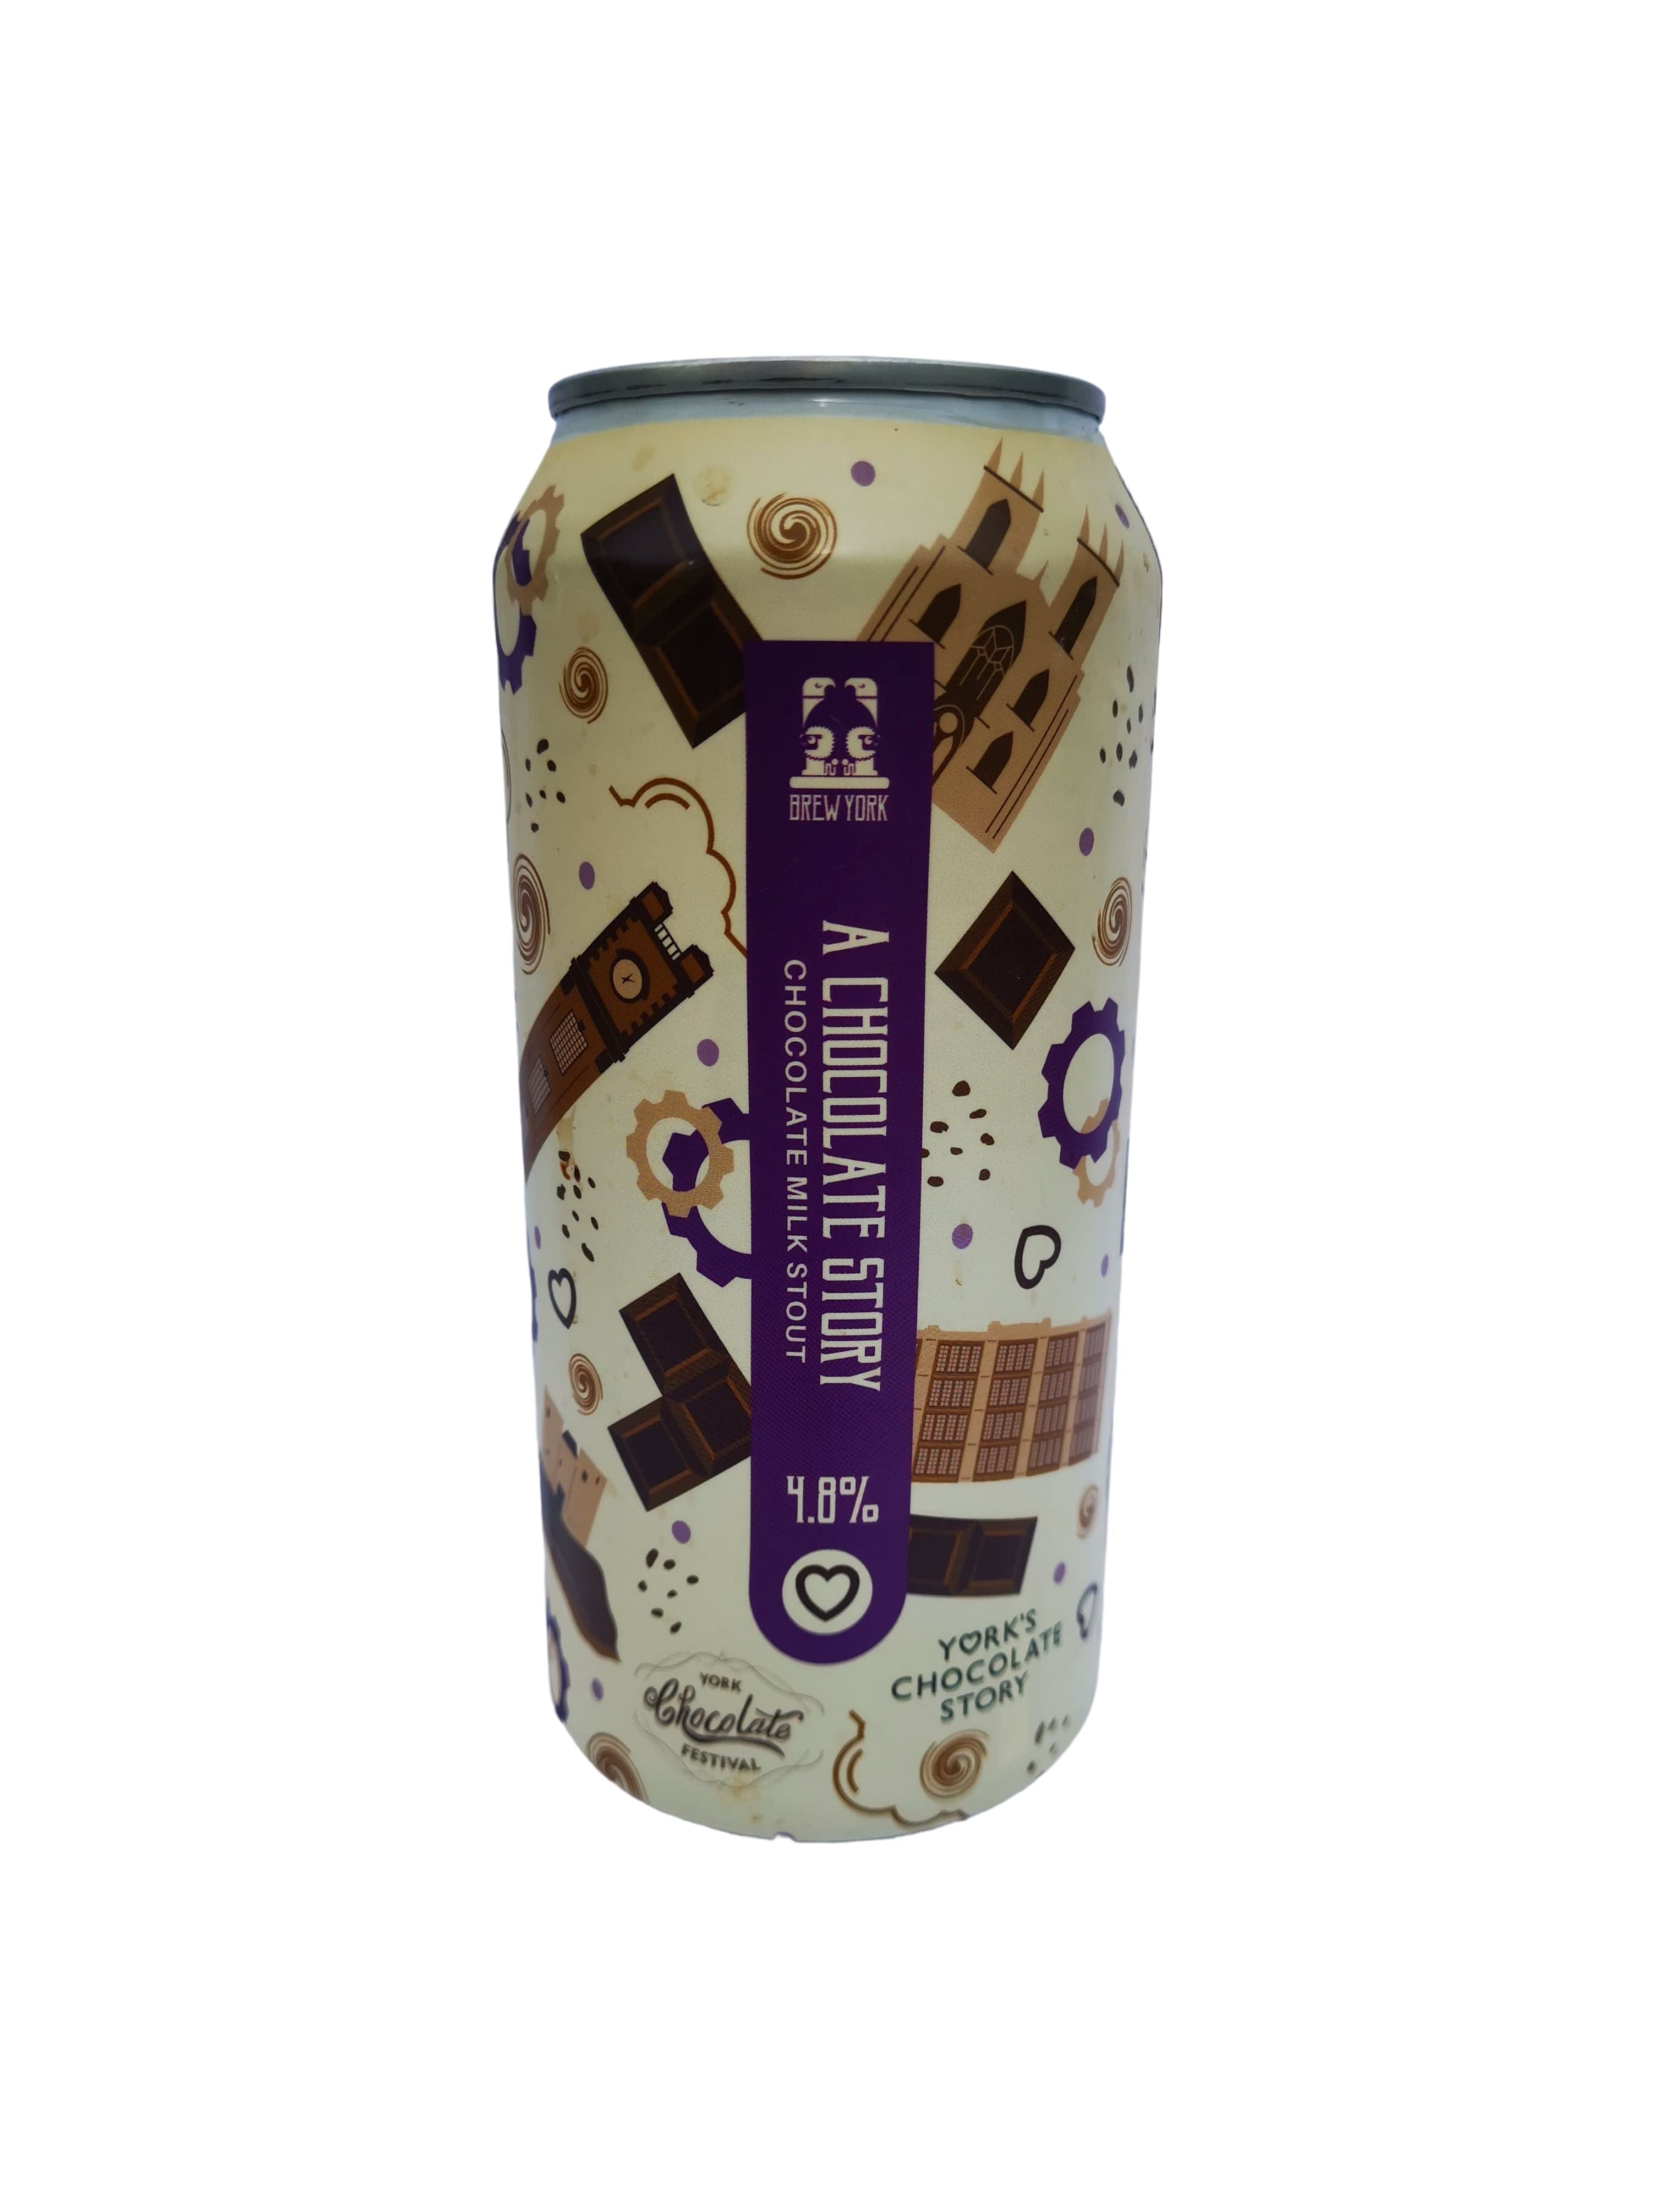 Brew York - A Chocolate Story - Stout - 4.8% (3.96 UT)